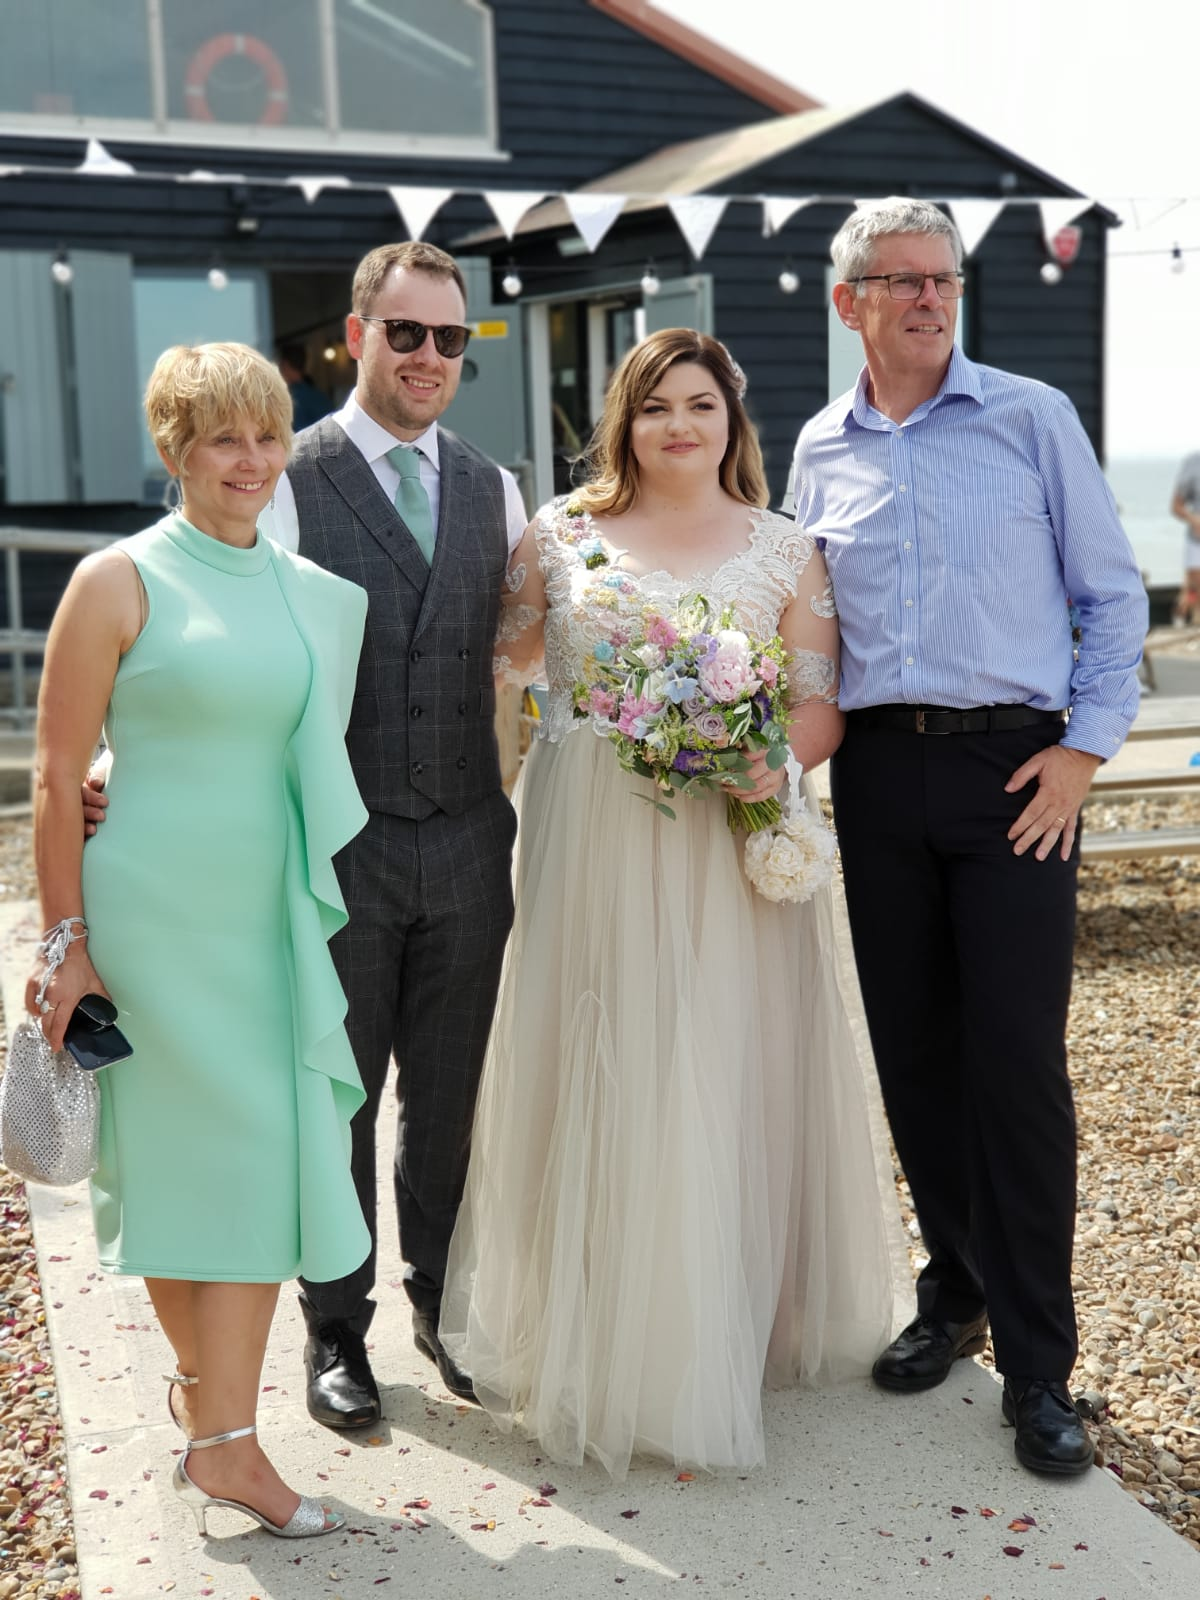 The father of the bride and his wife with the happy couple: Whitstable, UK, August 2018